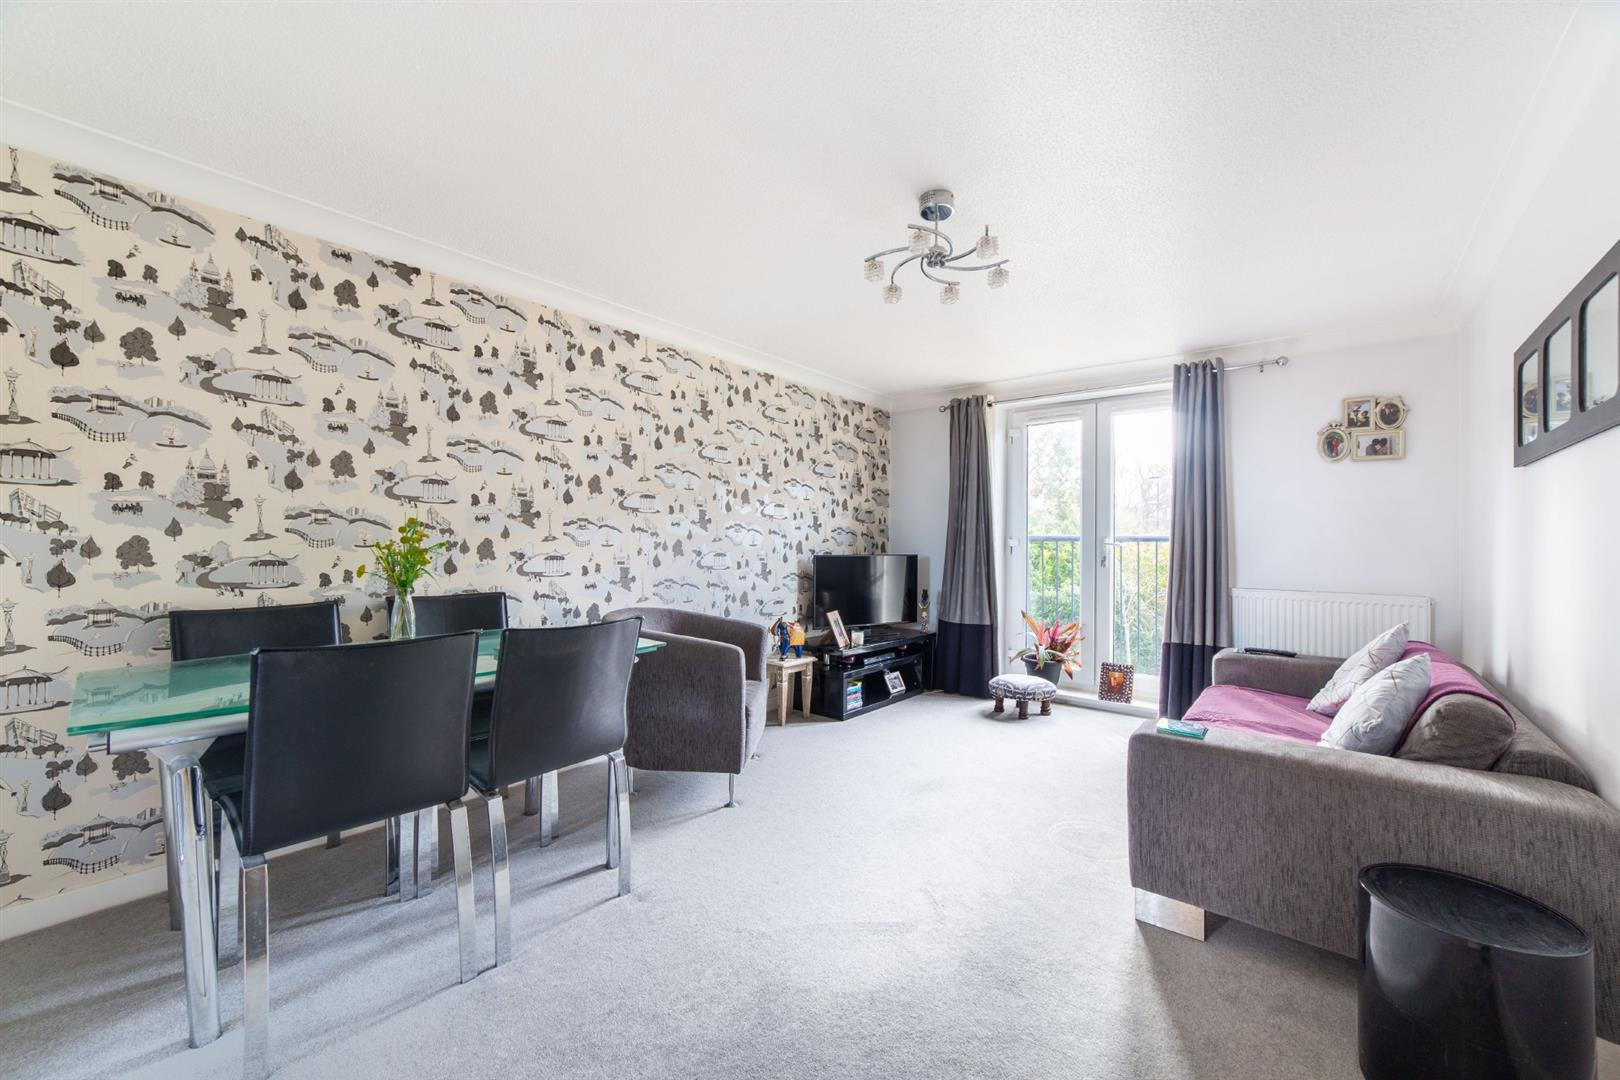 2 bed apartment for sale in Newcastle Upon Tyne, NE6 5BJ 3